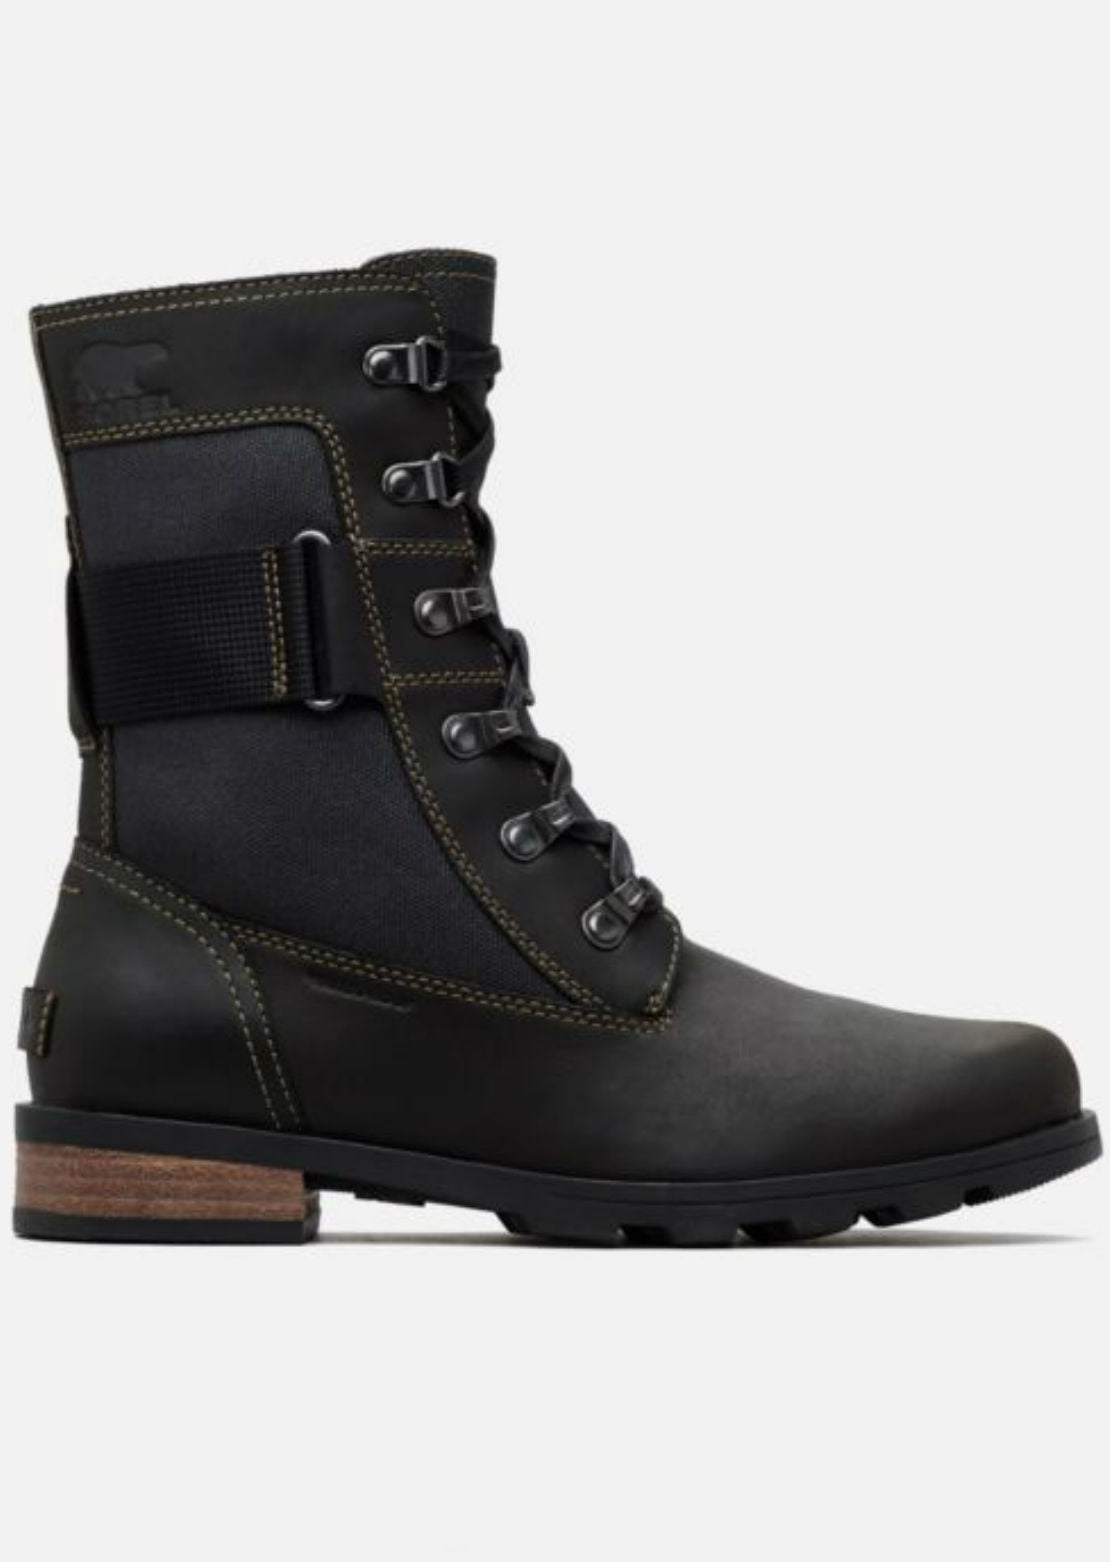 Sorel Women's Emelie Conquest Boots